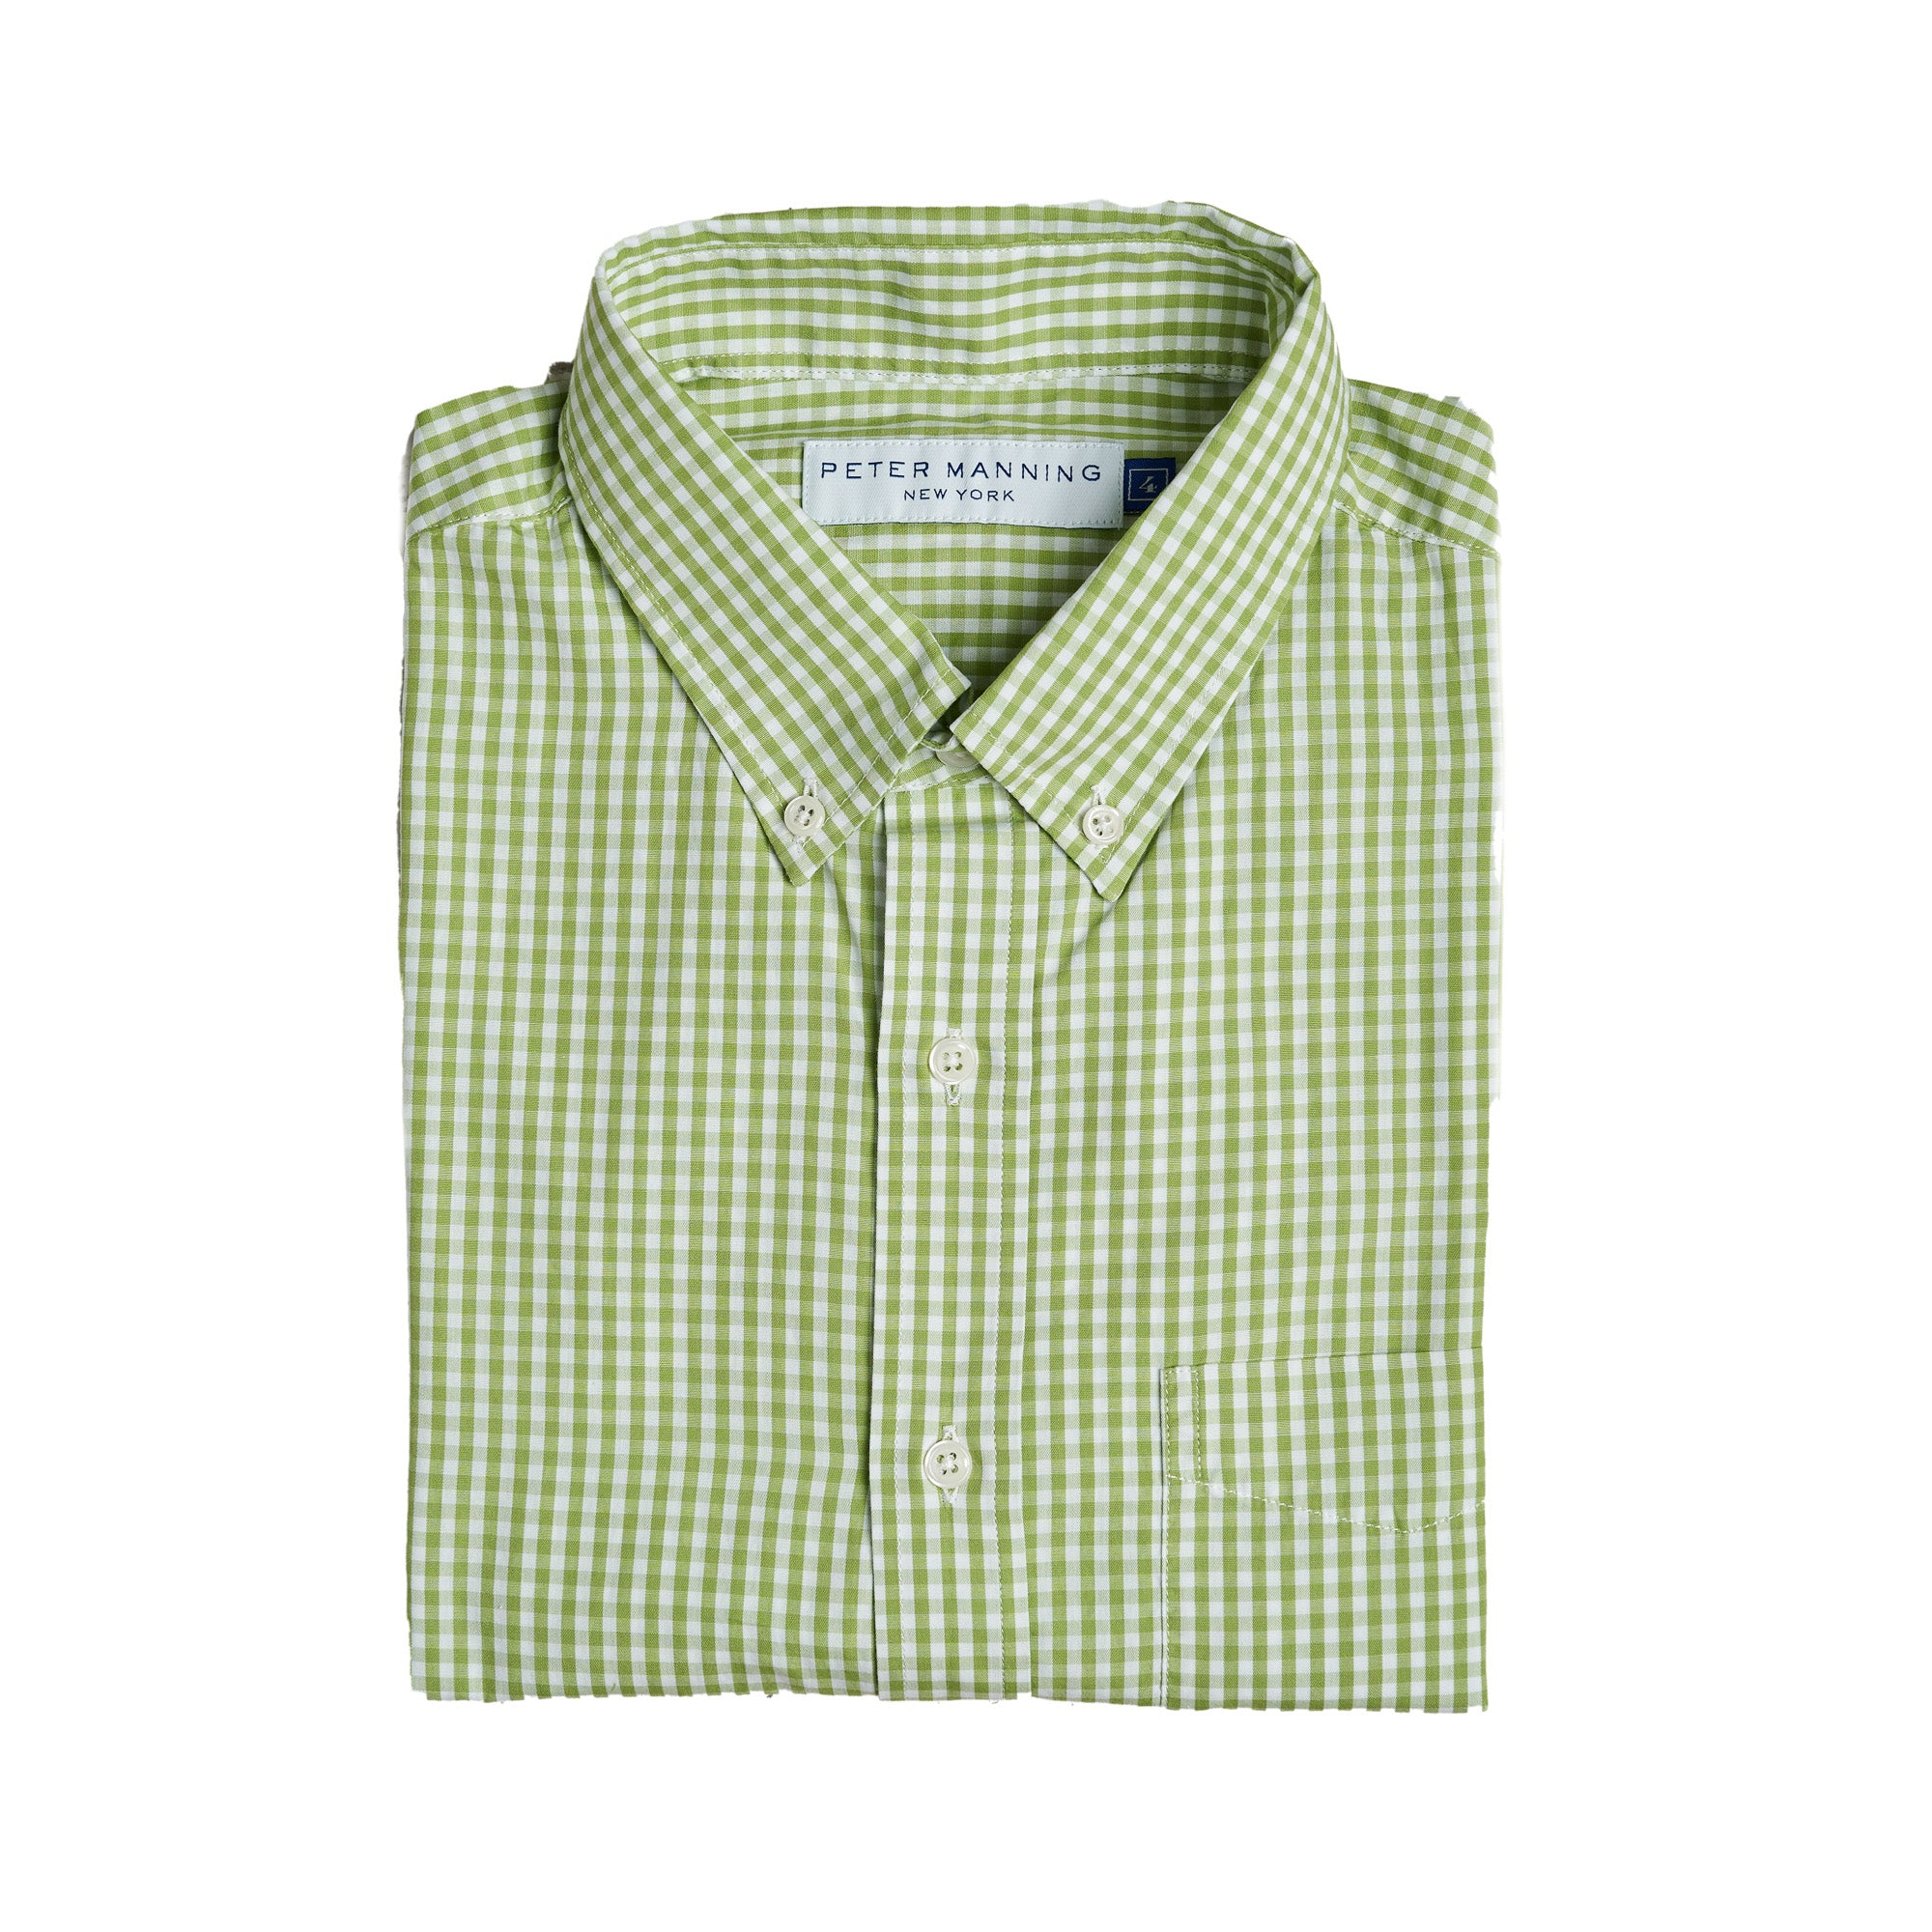 Everyday Shirts Standard Fit - Light Green Gingham